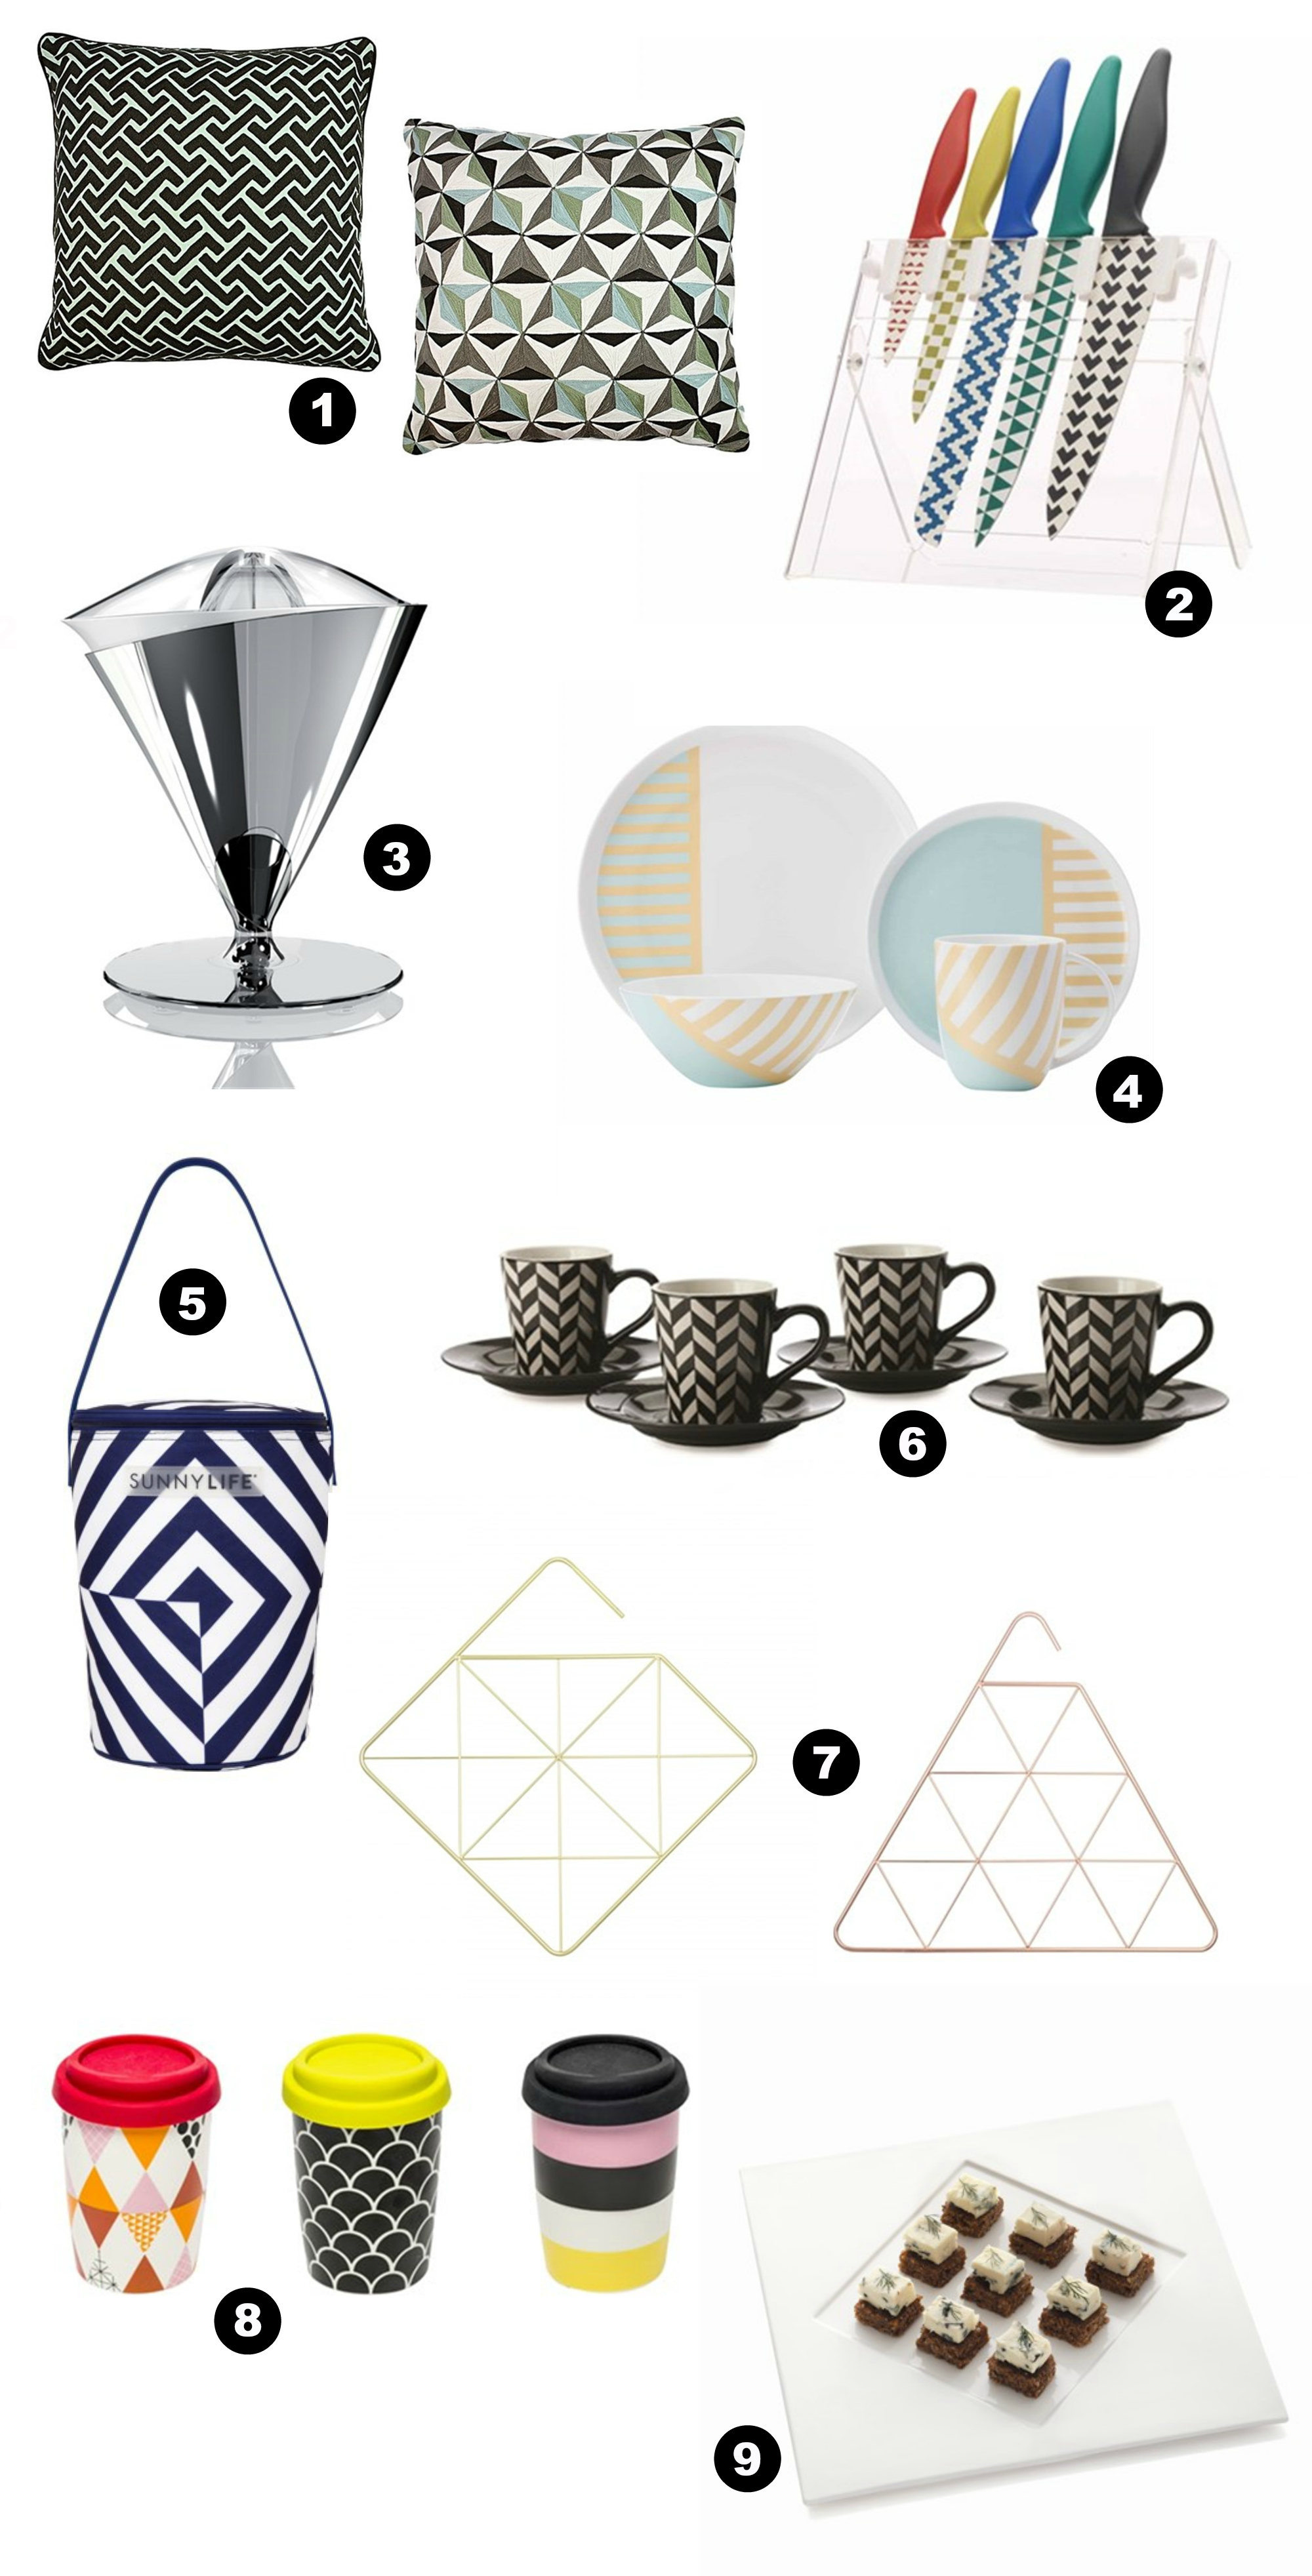 9 Ways to Add Geometric Glam to Your Home